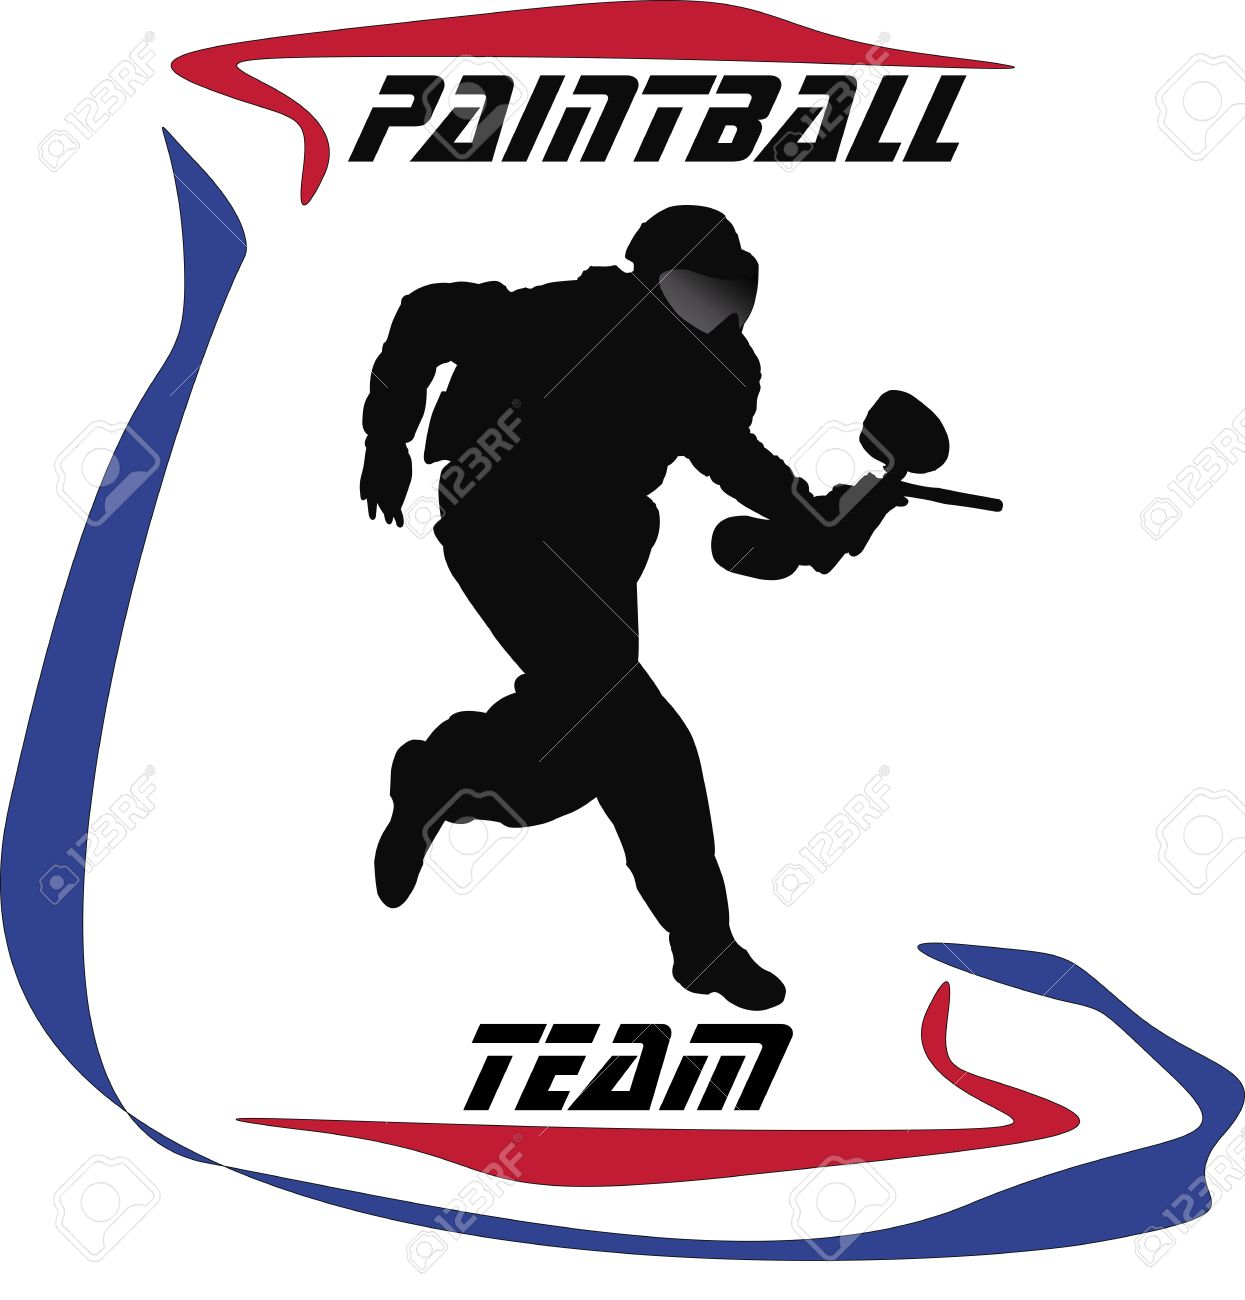 paintball logo royalty free cliparts vectors and stock rh 123rf com paintball google paintball google images